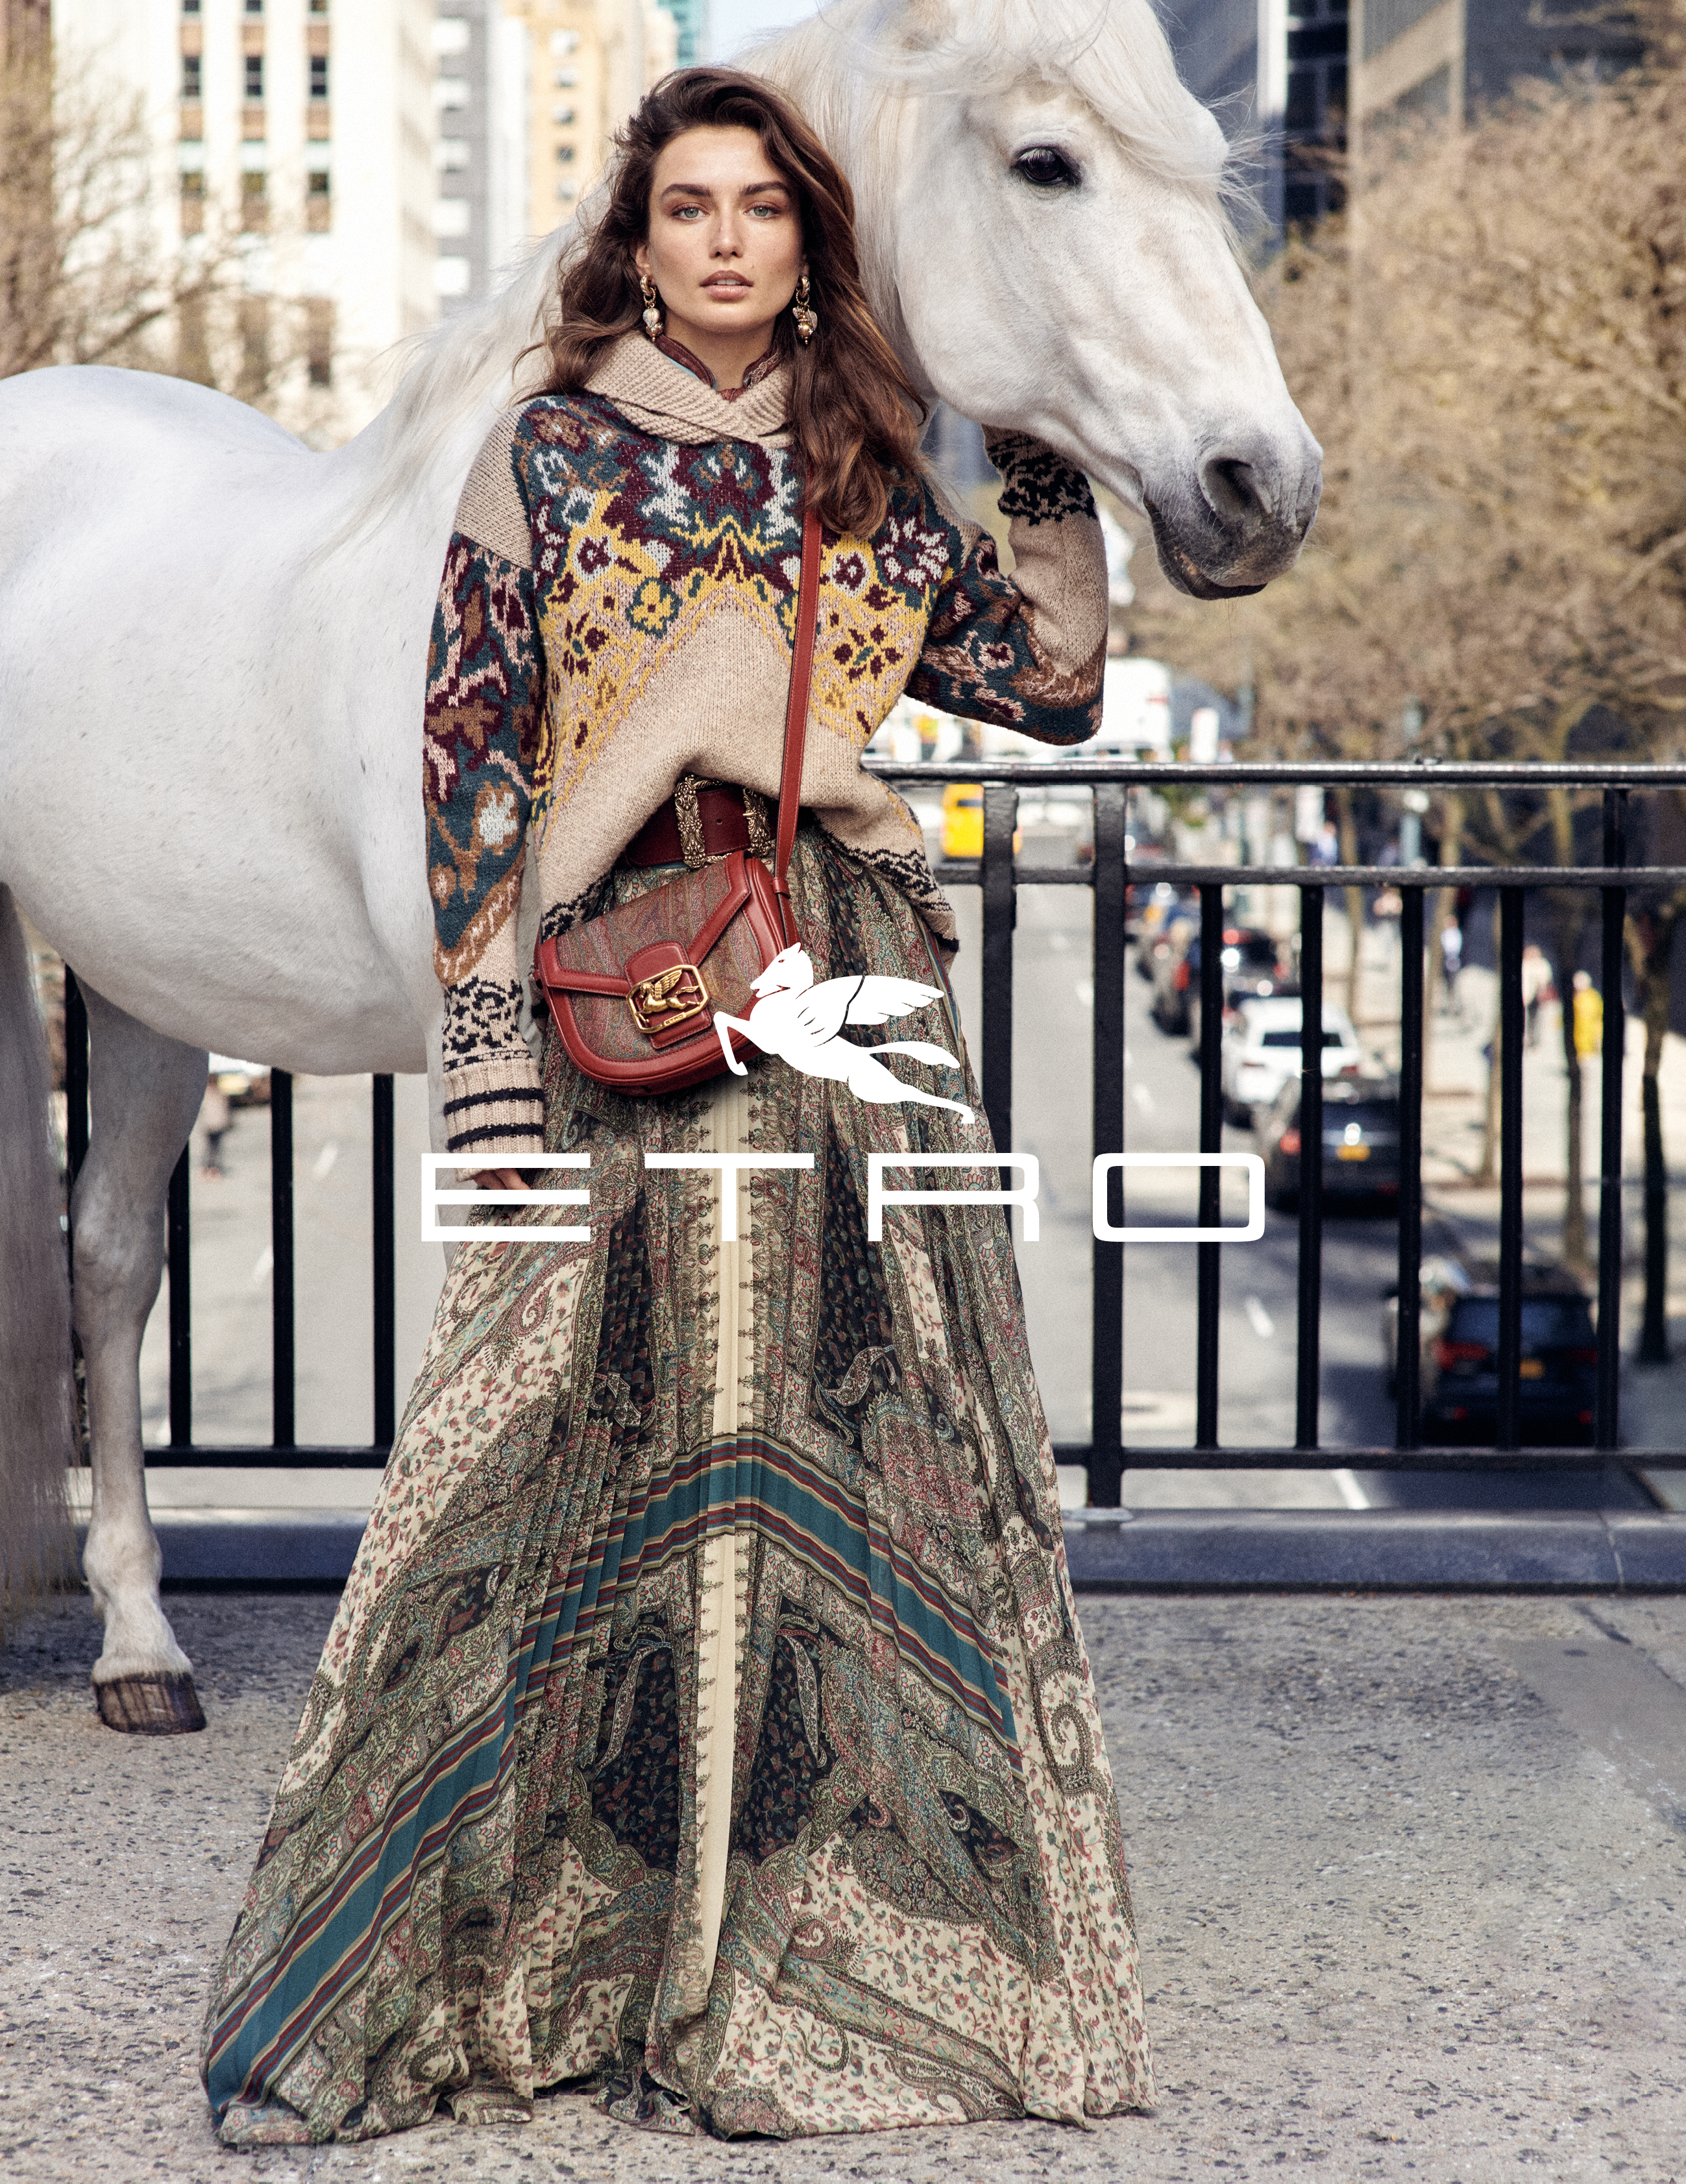 Etro Fall 2019 Ad Campaign By Cass Bird and Macs Iotti